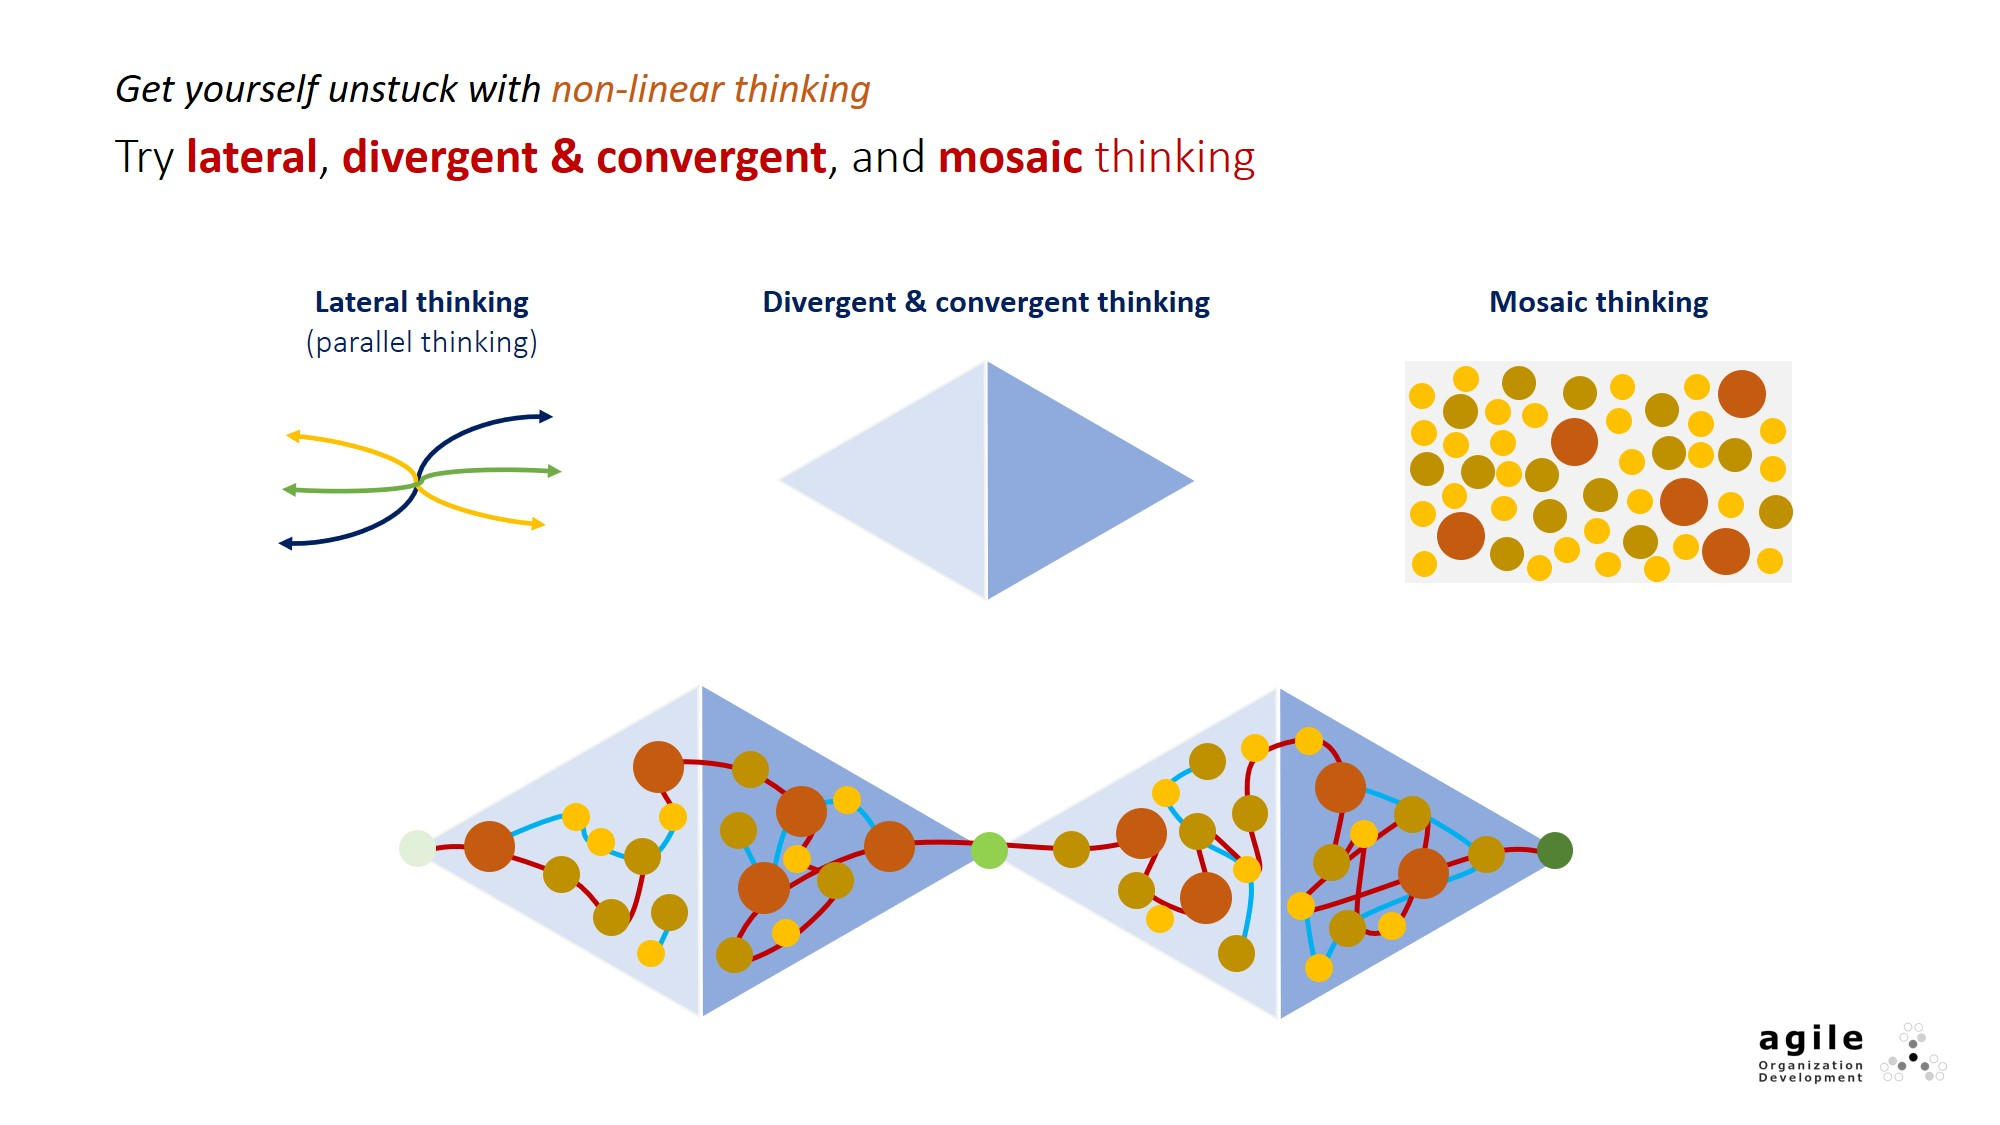 Get yourself unstuck with non-linear thinking. Try lateral, divergent & convergent, and mosaic thinking.